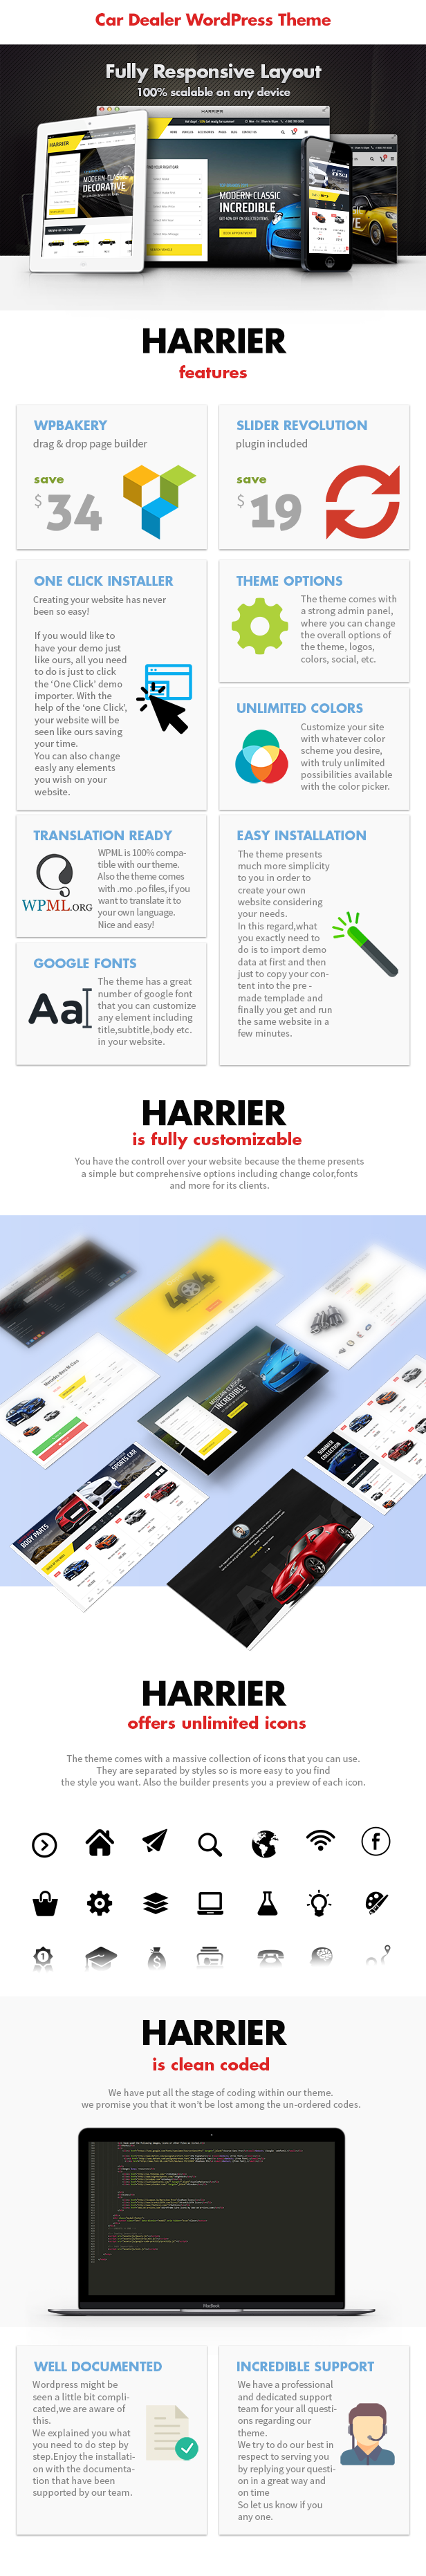 Harrier - Car Dealer and Automotive WordPress Theme - 3